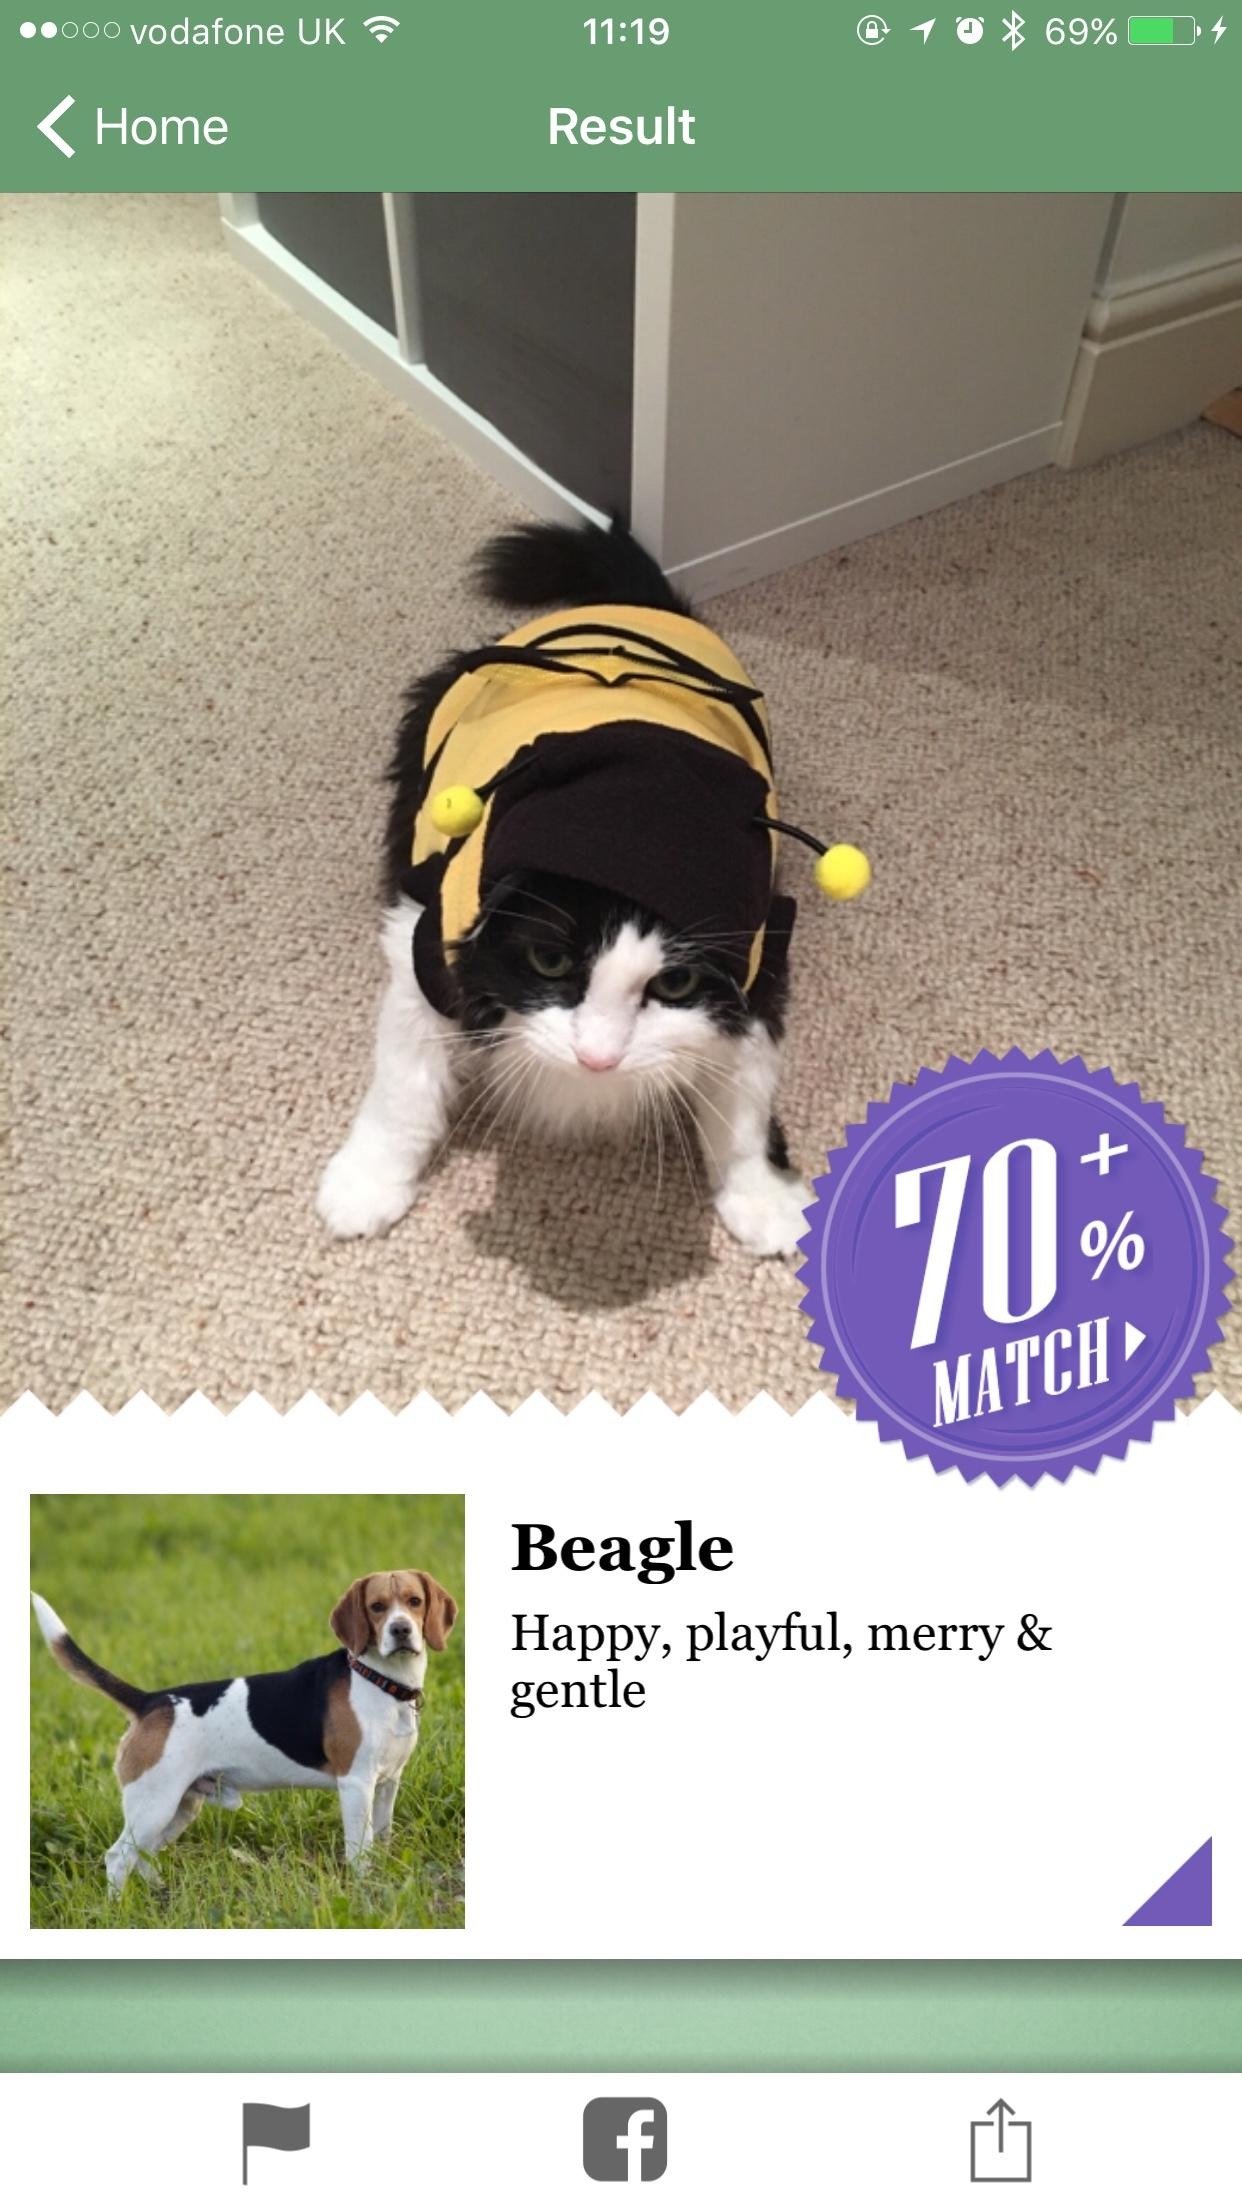 Microsoft's new iPhone app thinks my annoying cat is 70 percent dog